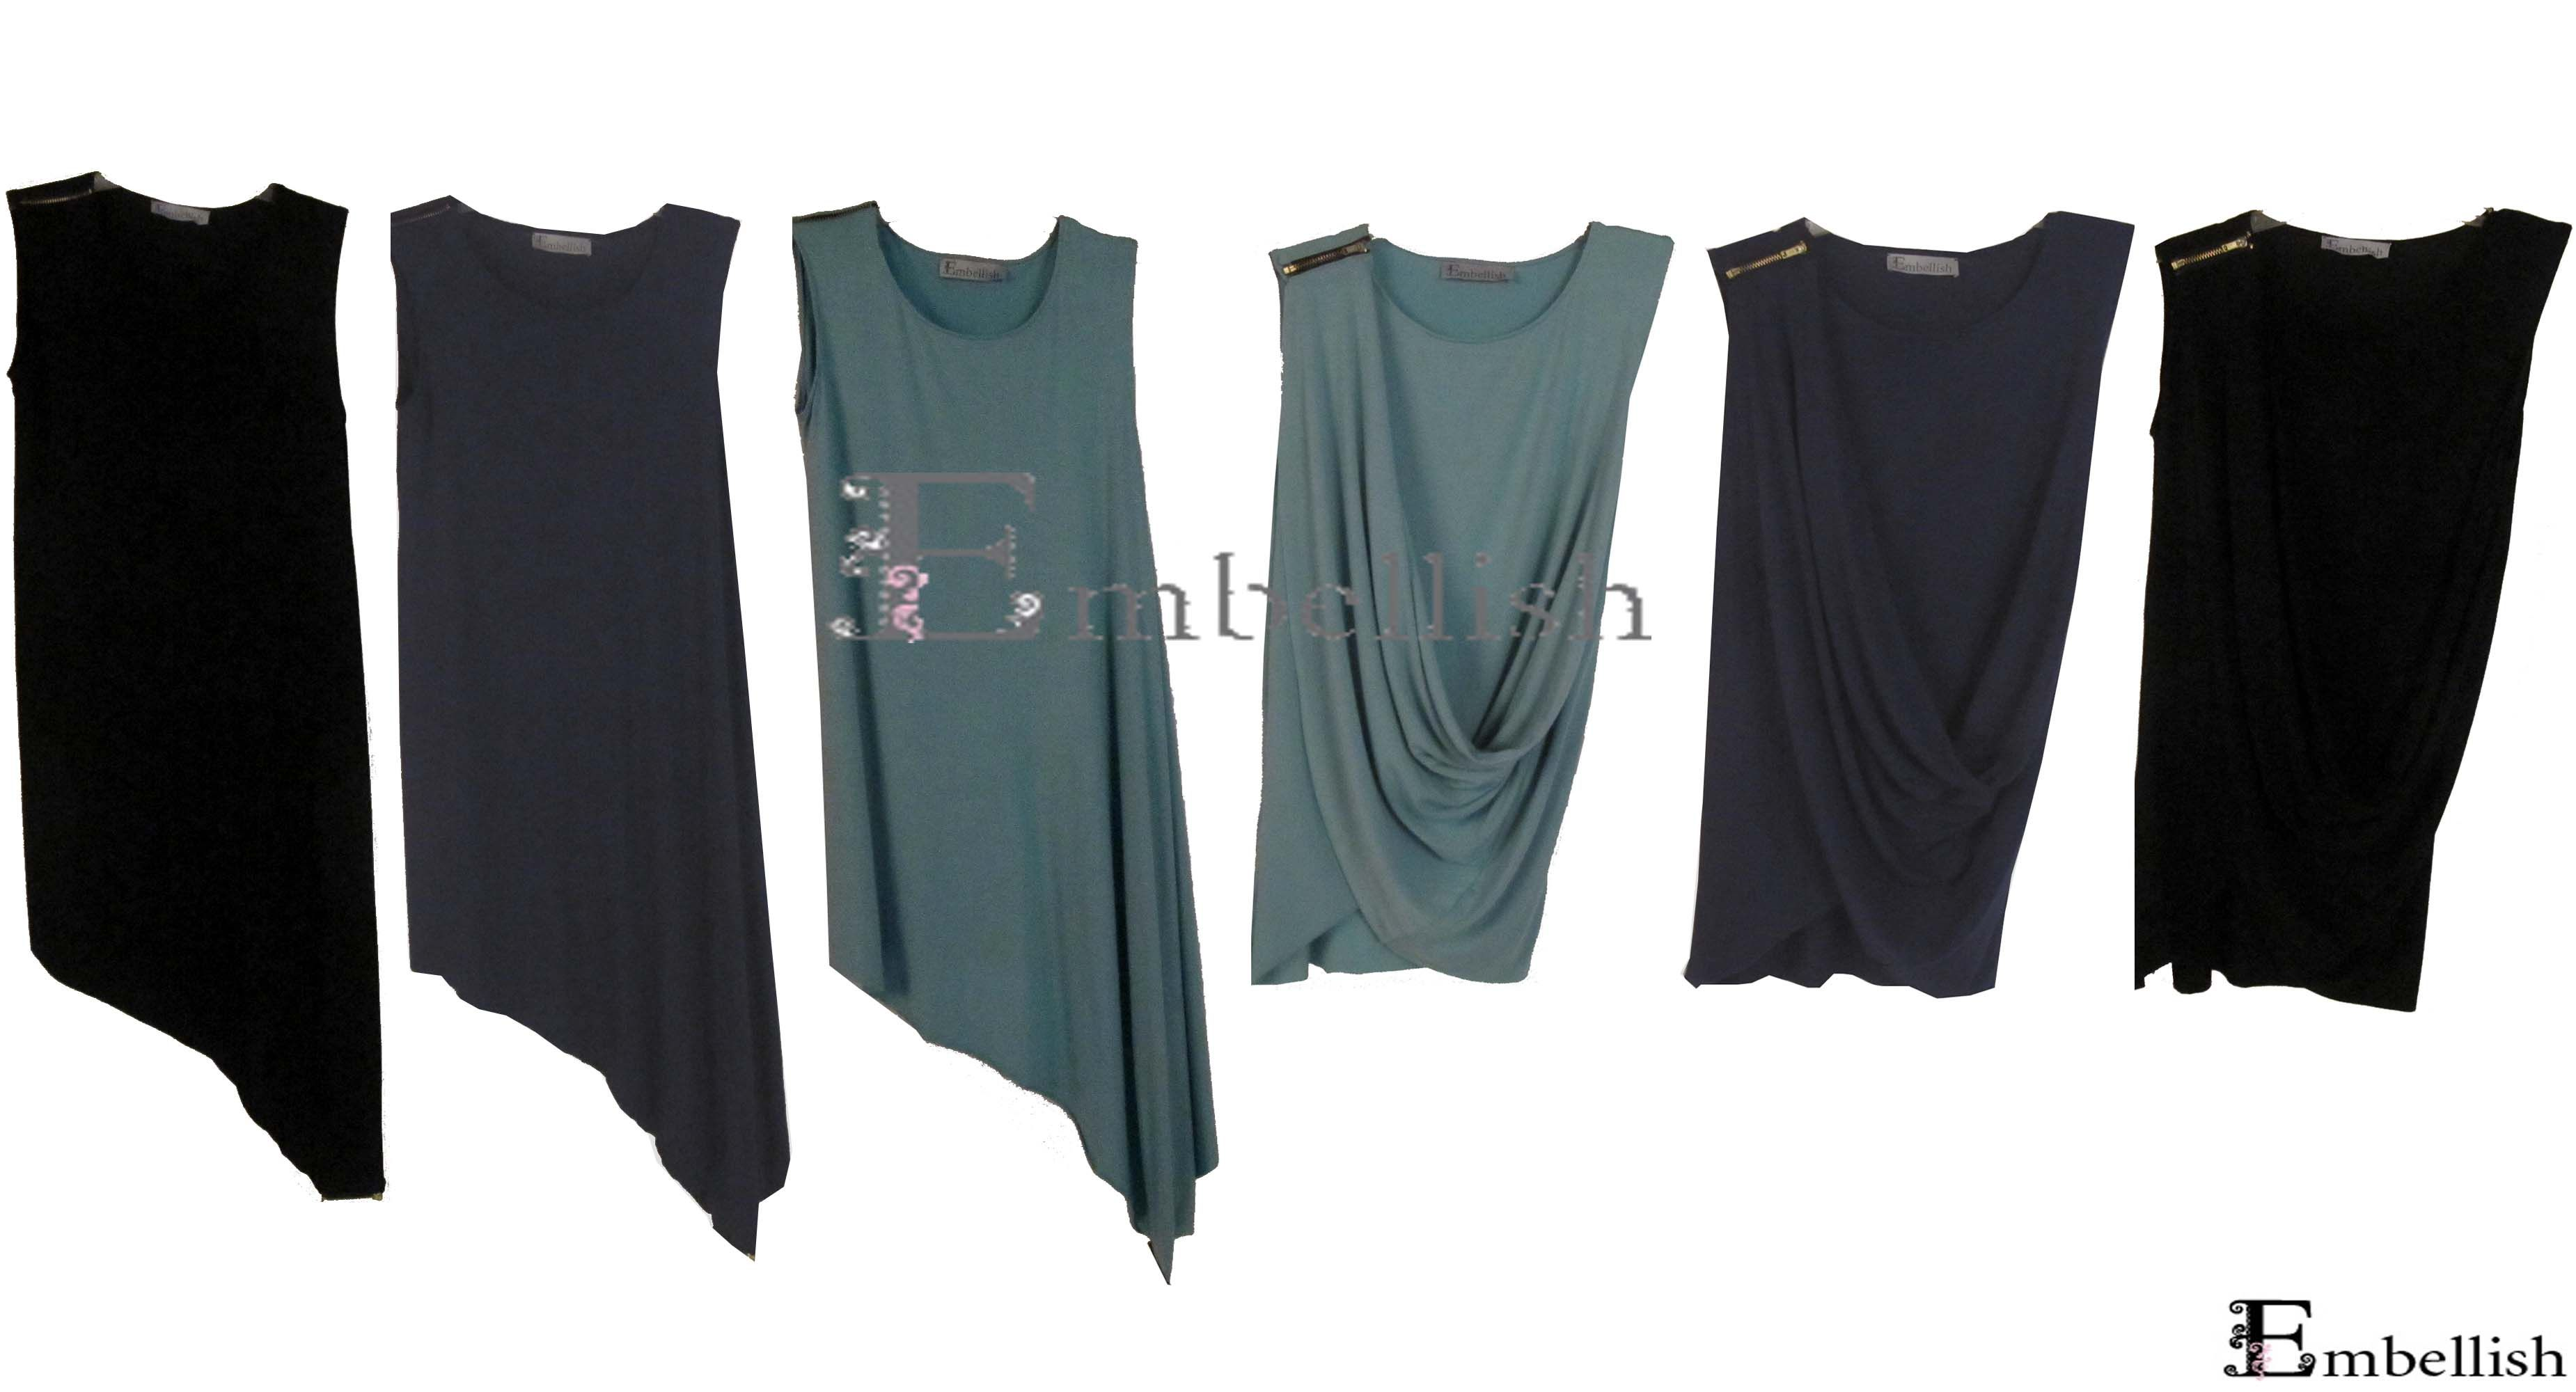 Php980 Bayo Dress/Blouse (Mint, Navy and Black)